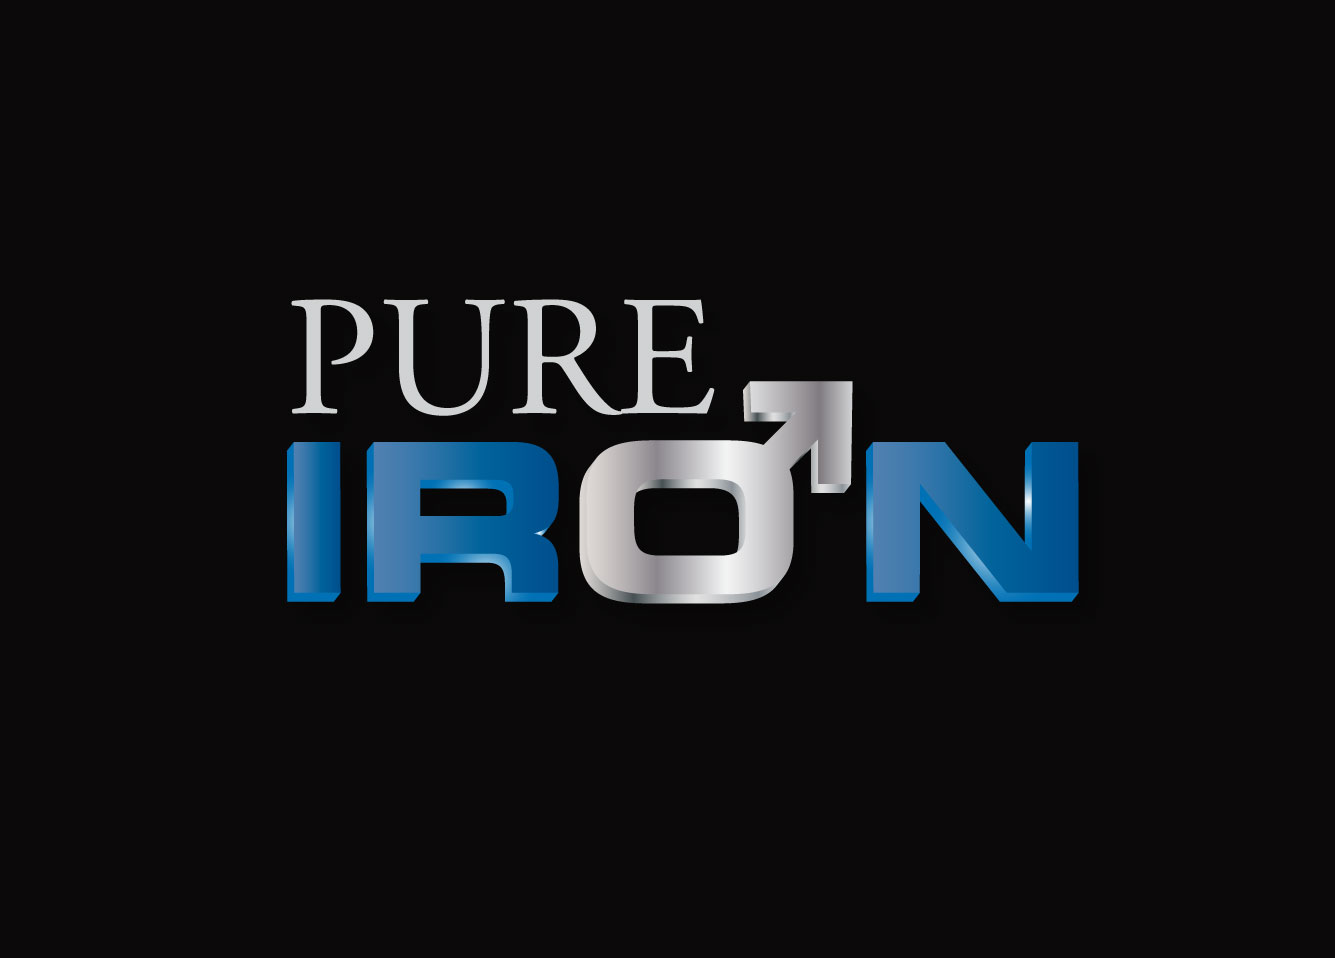 Logo Design by Himanth Kumar - Entry No. 147 in the Logo Design Contest Fun Logo Design for Pure Iron.